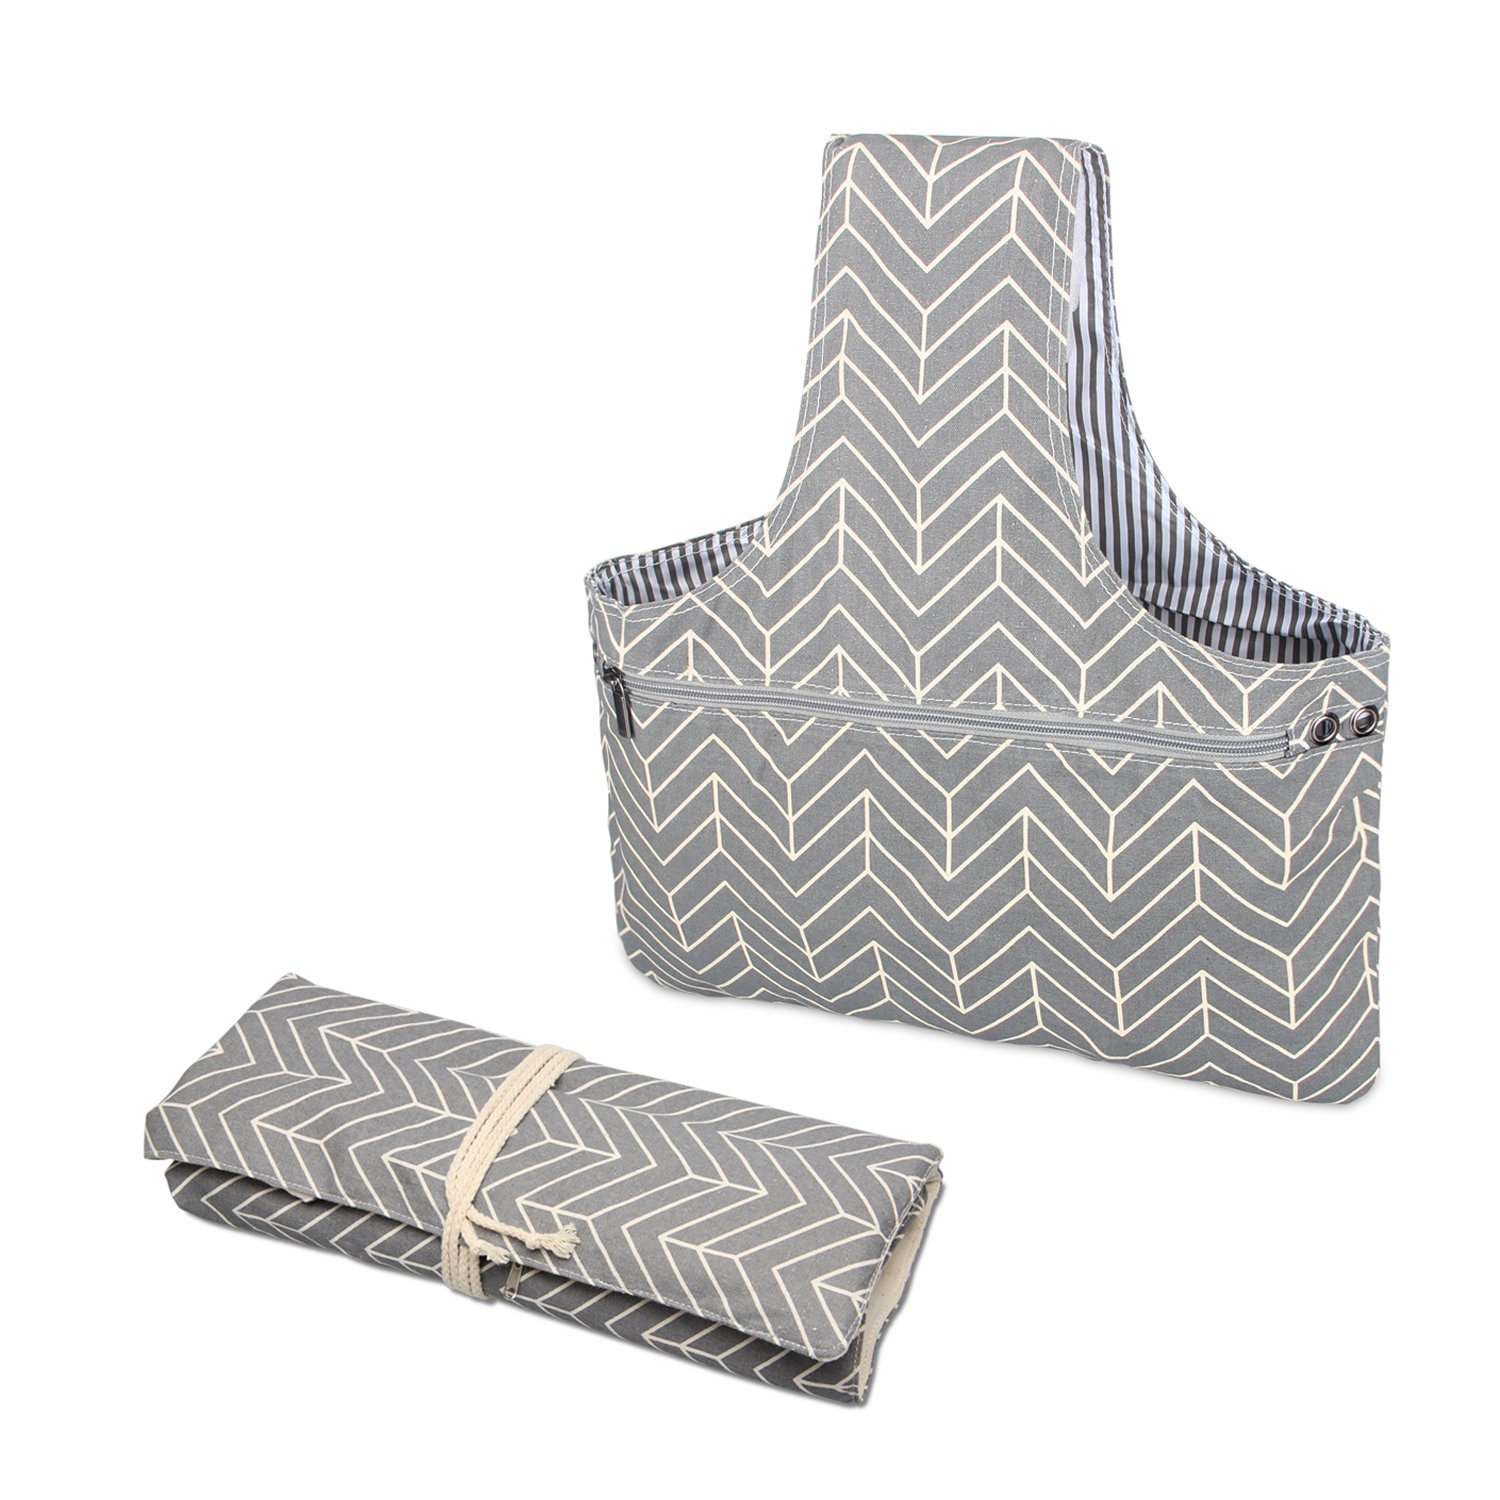 Teamoy 2 Pack Canvas Knitting Tote Bag and Knitting Needles Roll Holder for Yarn, Knitting Needles(14 inches), Supplies and More, Perfect Size for Knitting on The Go(Large, Sheep) Damero INC